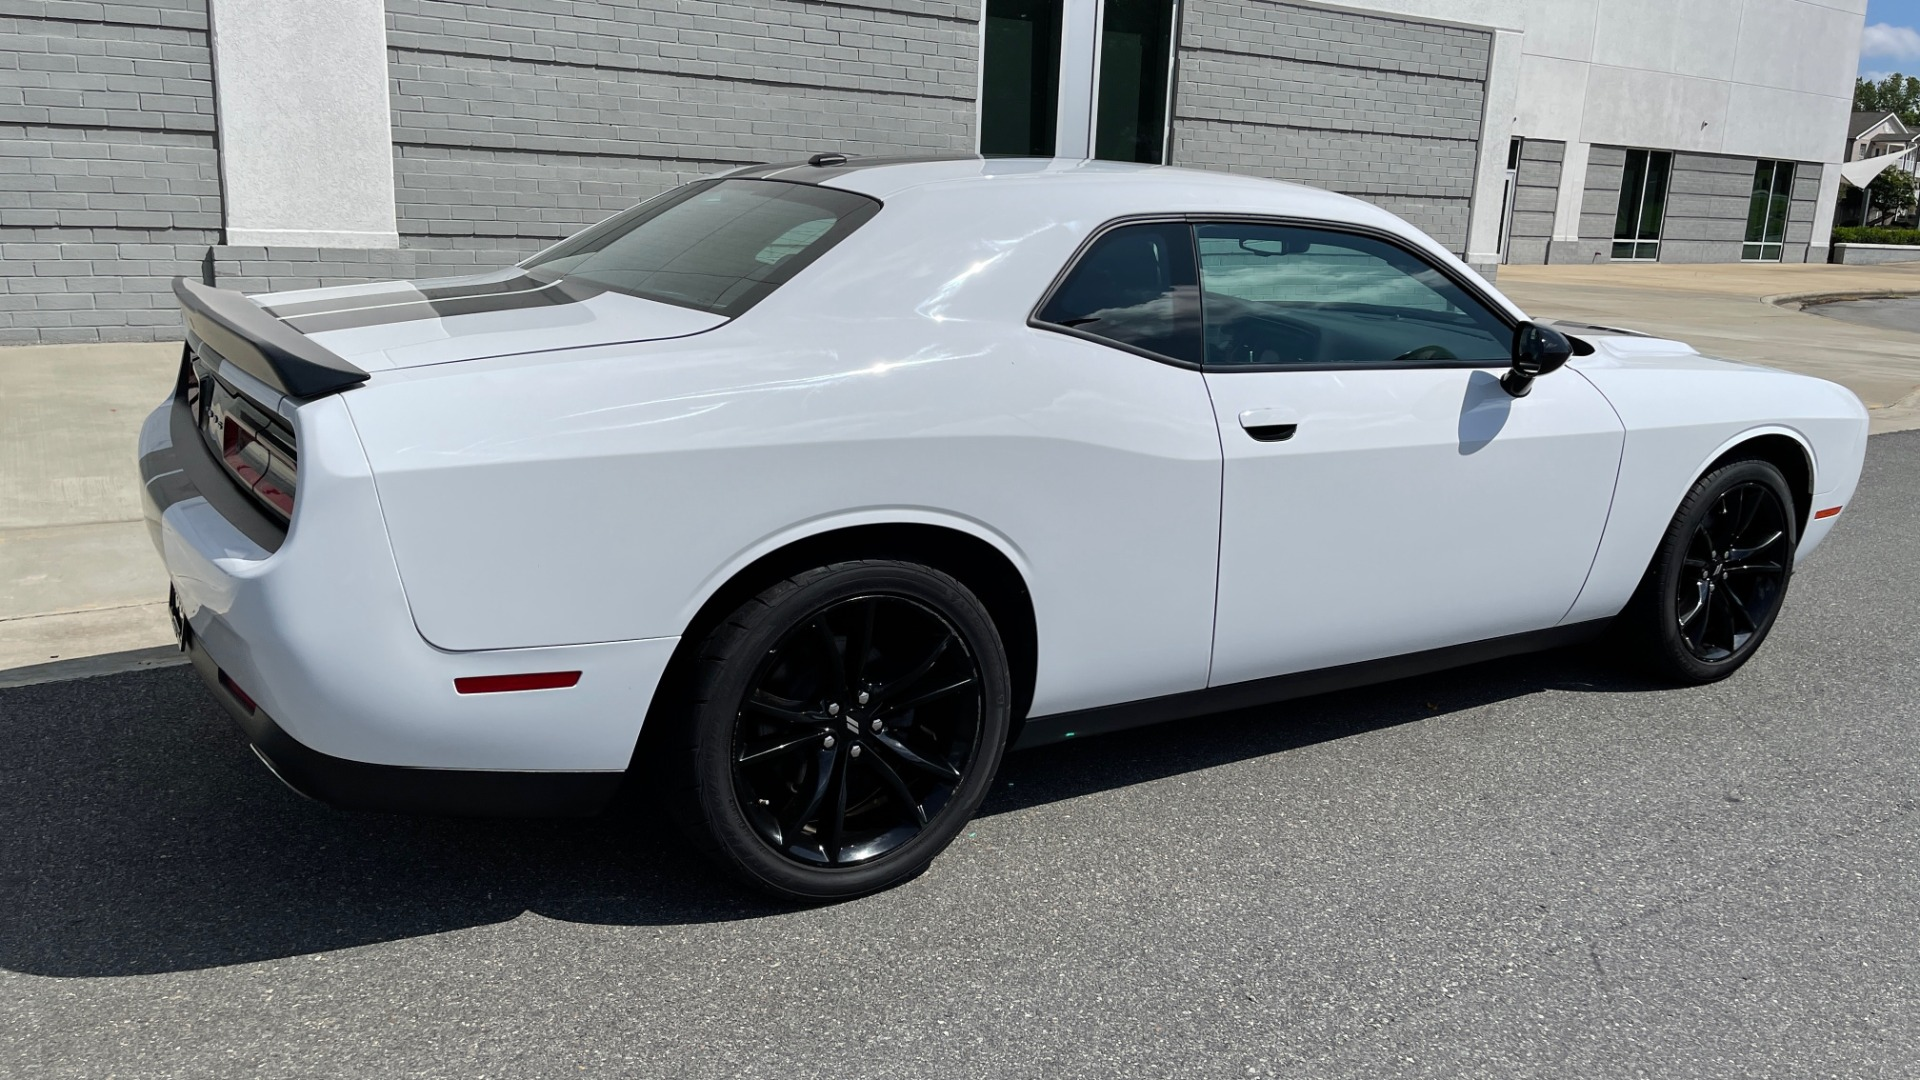 Used 2018 Dodge CHALLENGER SXT COUPE / BLACKTOP PKG / 3.6L V6 / 8-SPD AUTO / REARVIEW for sale $31,995 at Formula Imports in Charlotte NC 28227 2